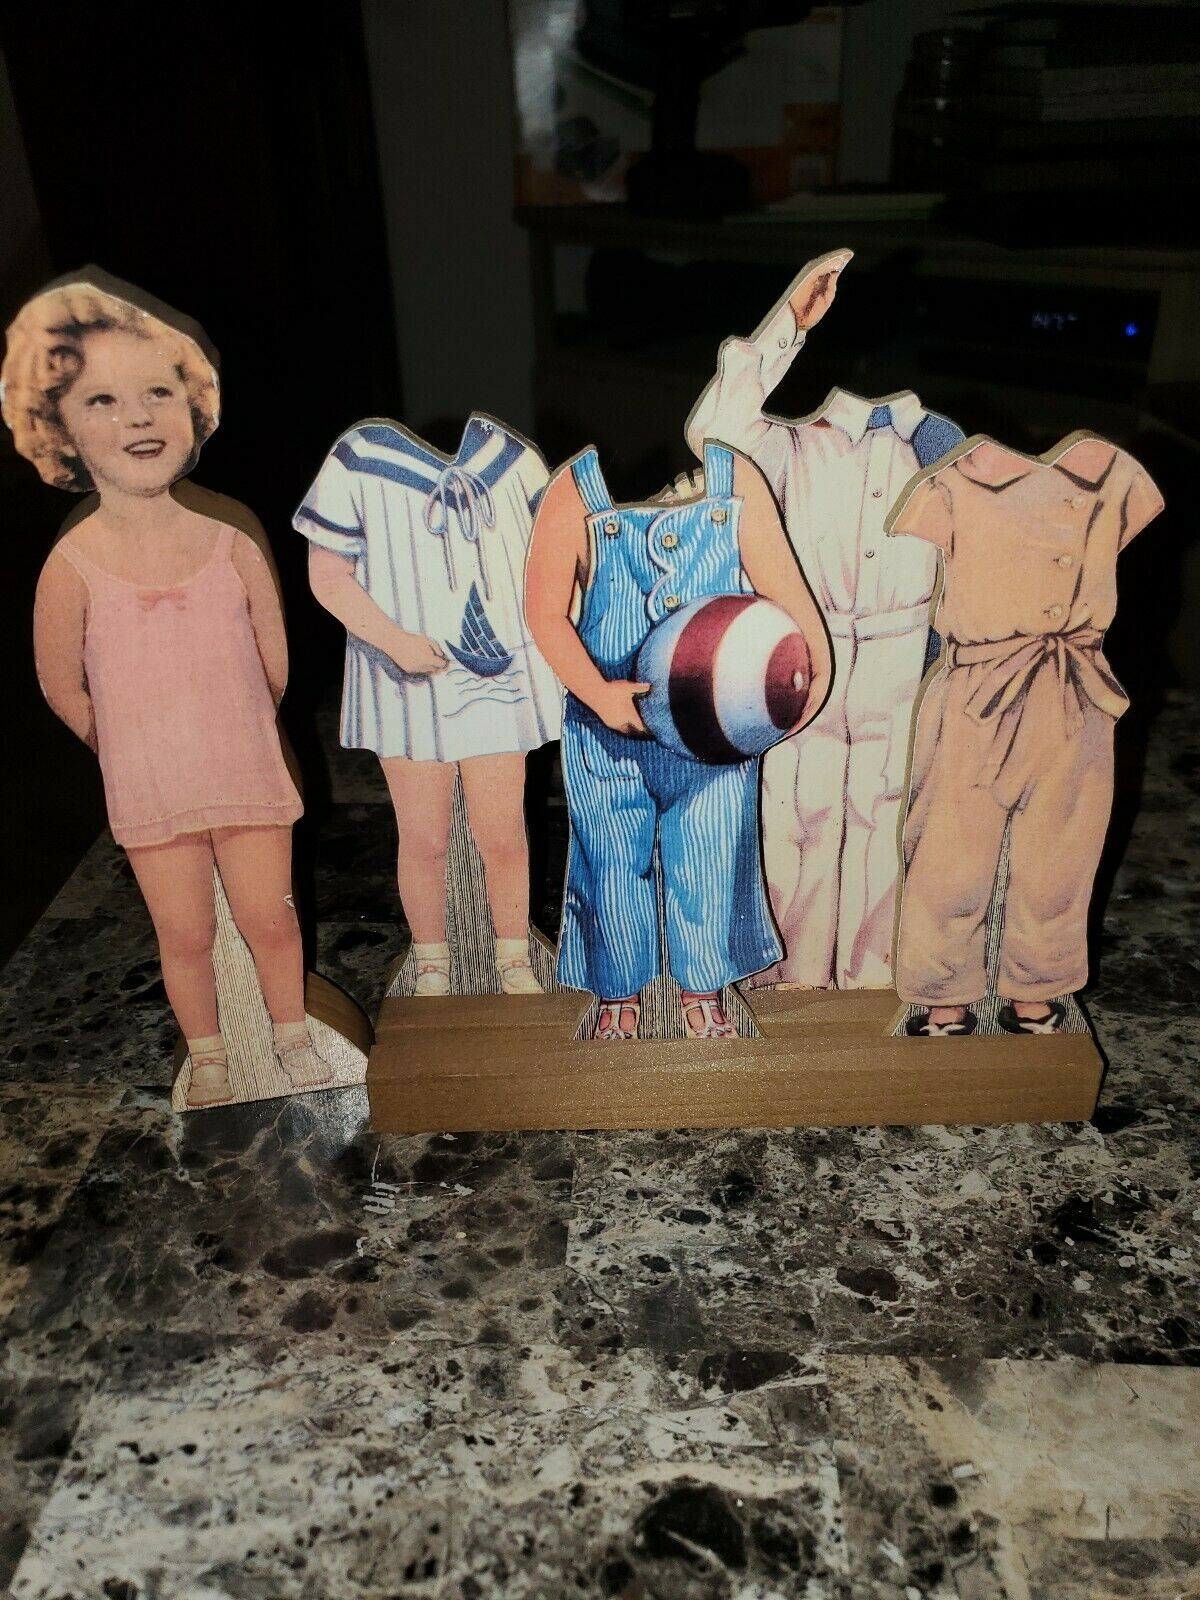 RARE SHIRLEY TEMPLE CARVED Holz DOLL W PAPER DOLL OUTFITS & Holz zeigen STAND